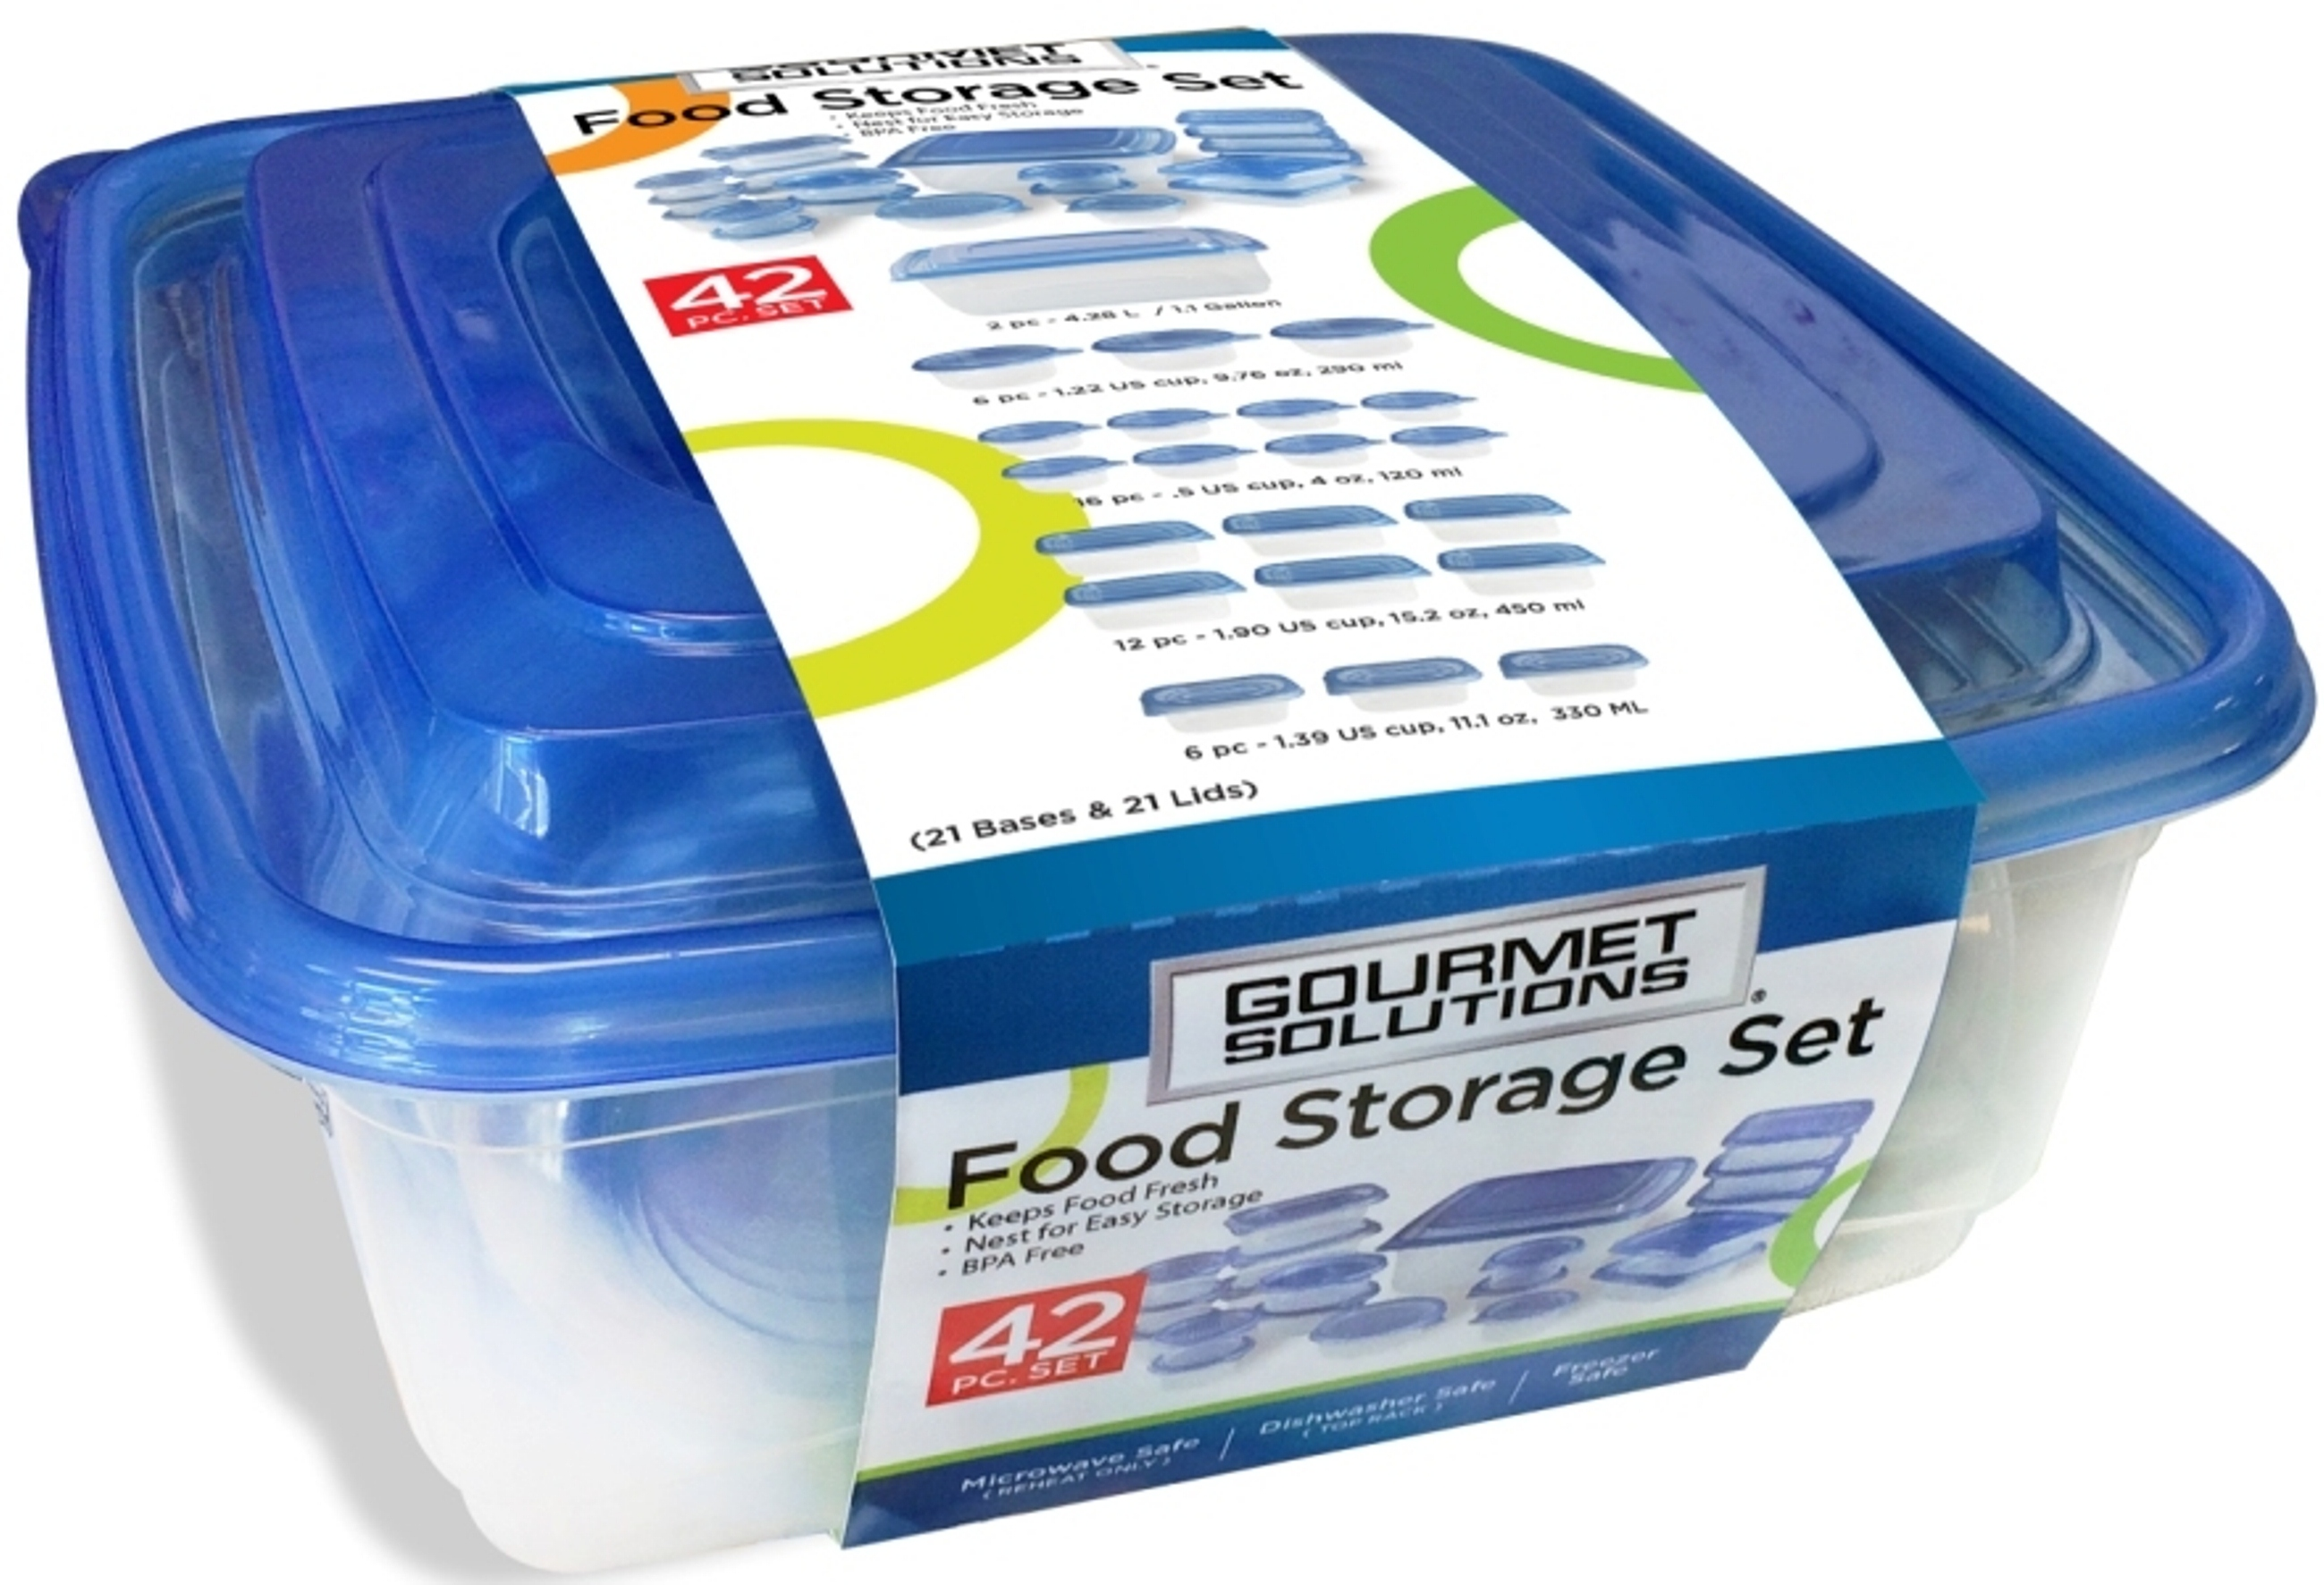 Solutions Storage Gourmet Solutions 42 Piece Food Solution Set